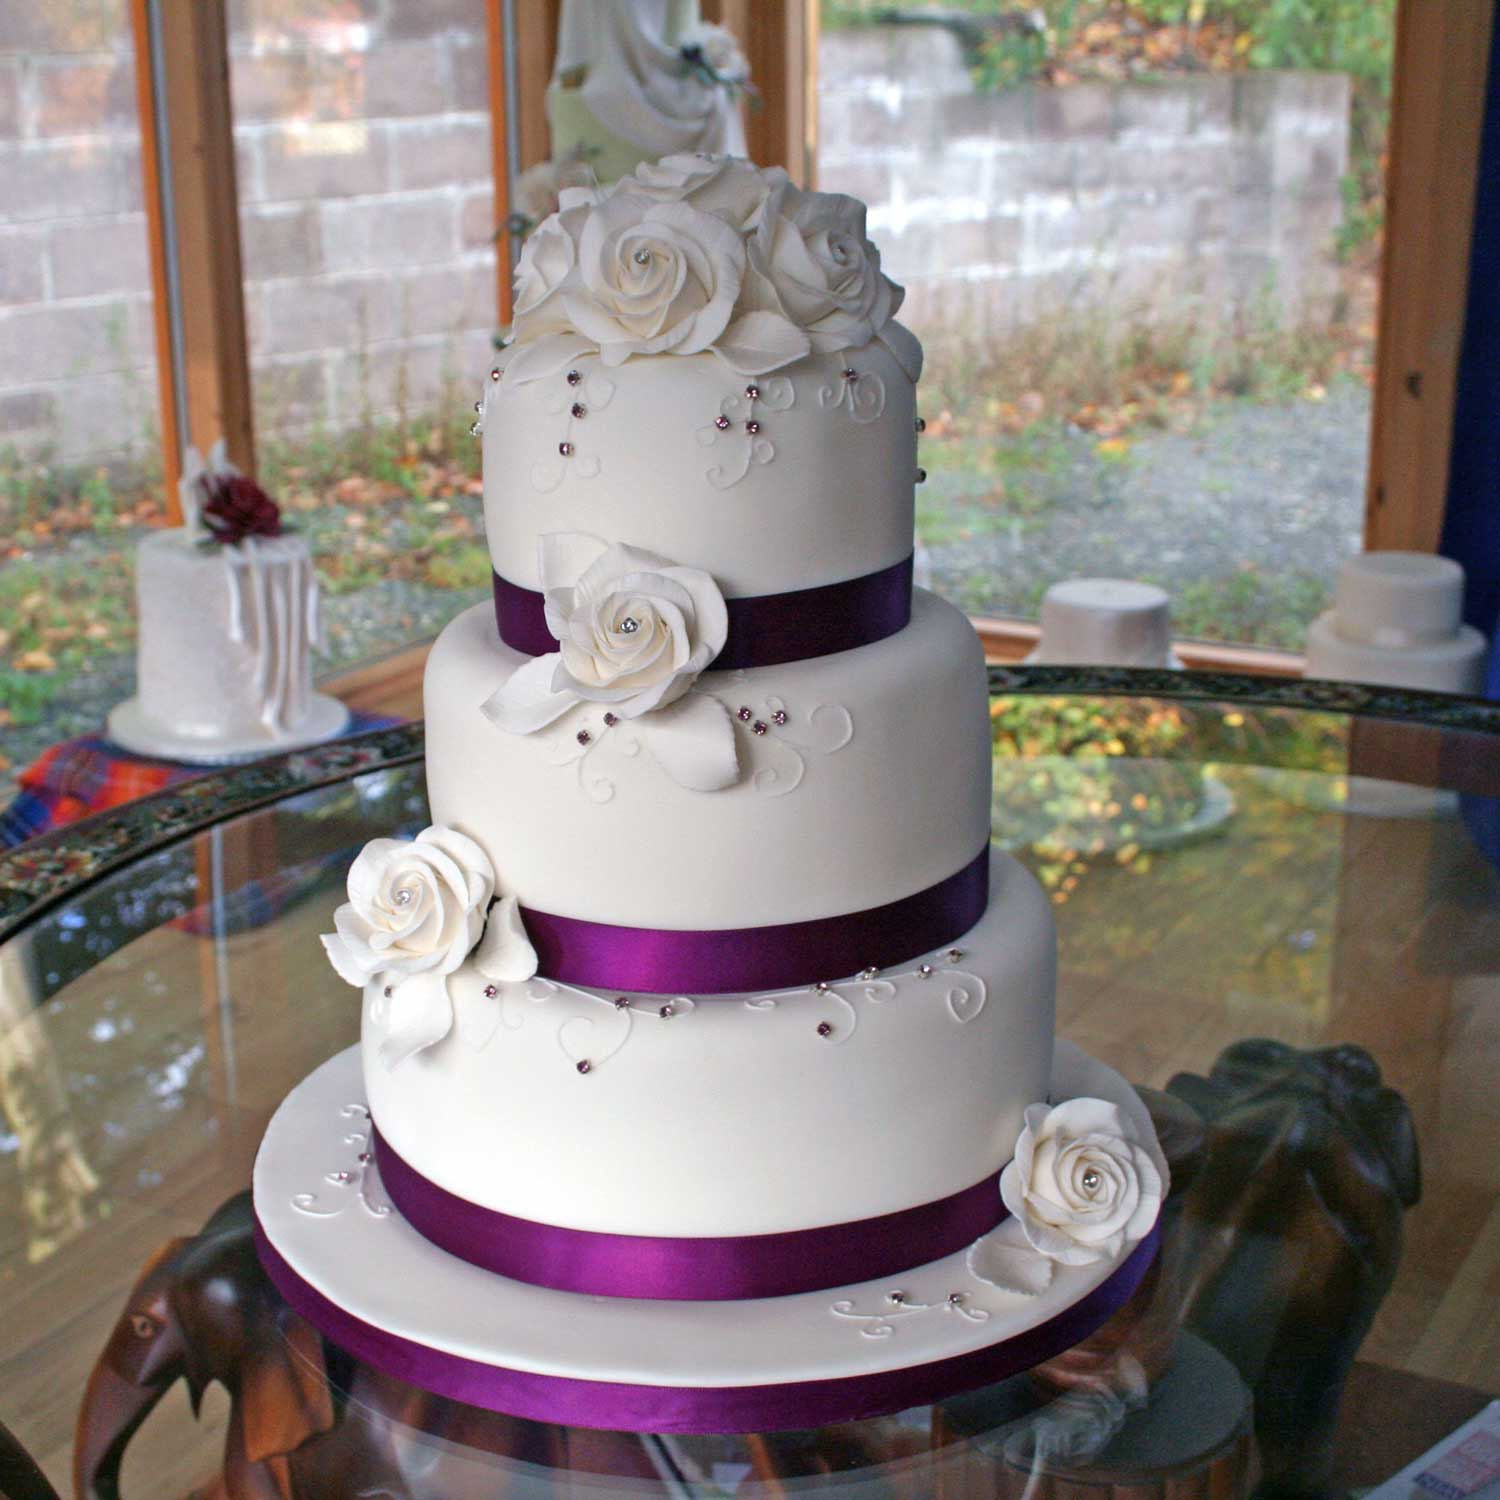 Wedding Cake Decor Uk : Classic Wedding Cakes Vintage and Retro Wedding Cake ...